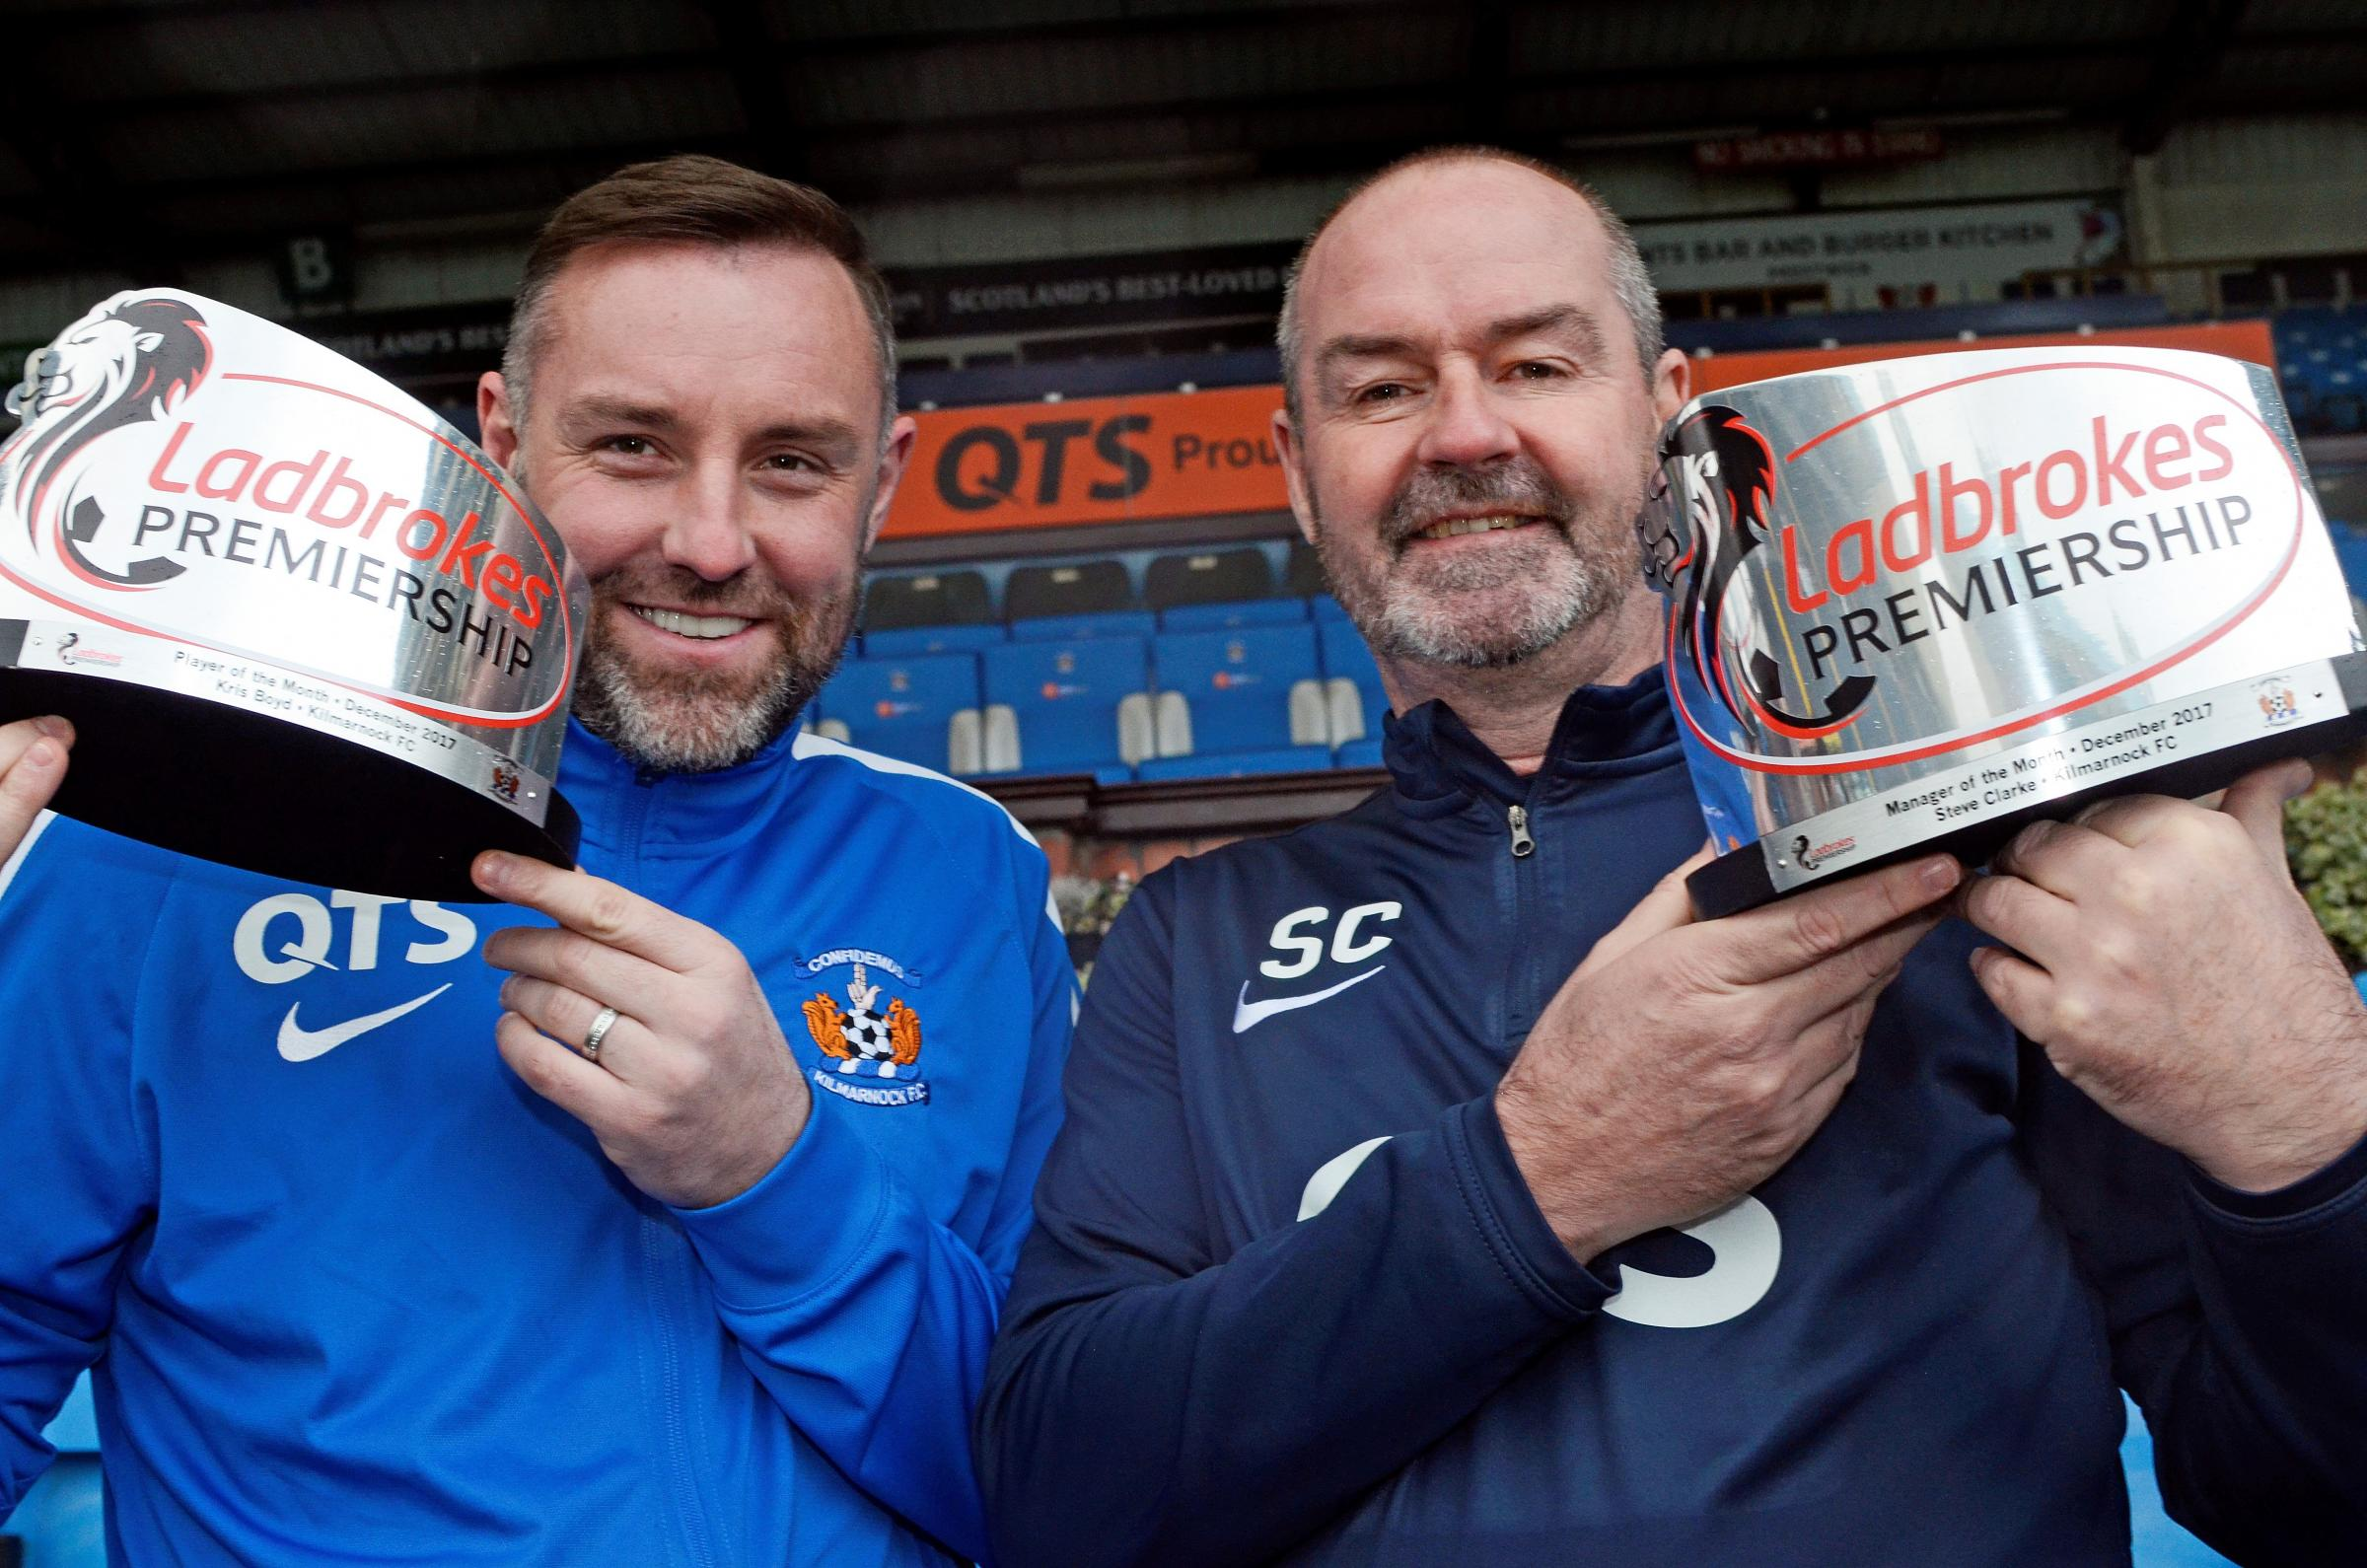 DOUBLE CELEBRATION: Ladbrokes Premiership Player of the  Month Kris Boyd is pictured with Manager of the Month Steve Clark at Rugby Park on Monday.